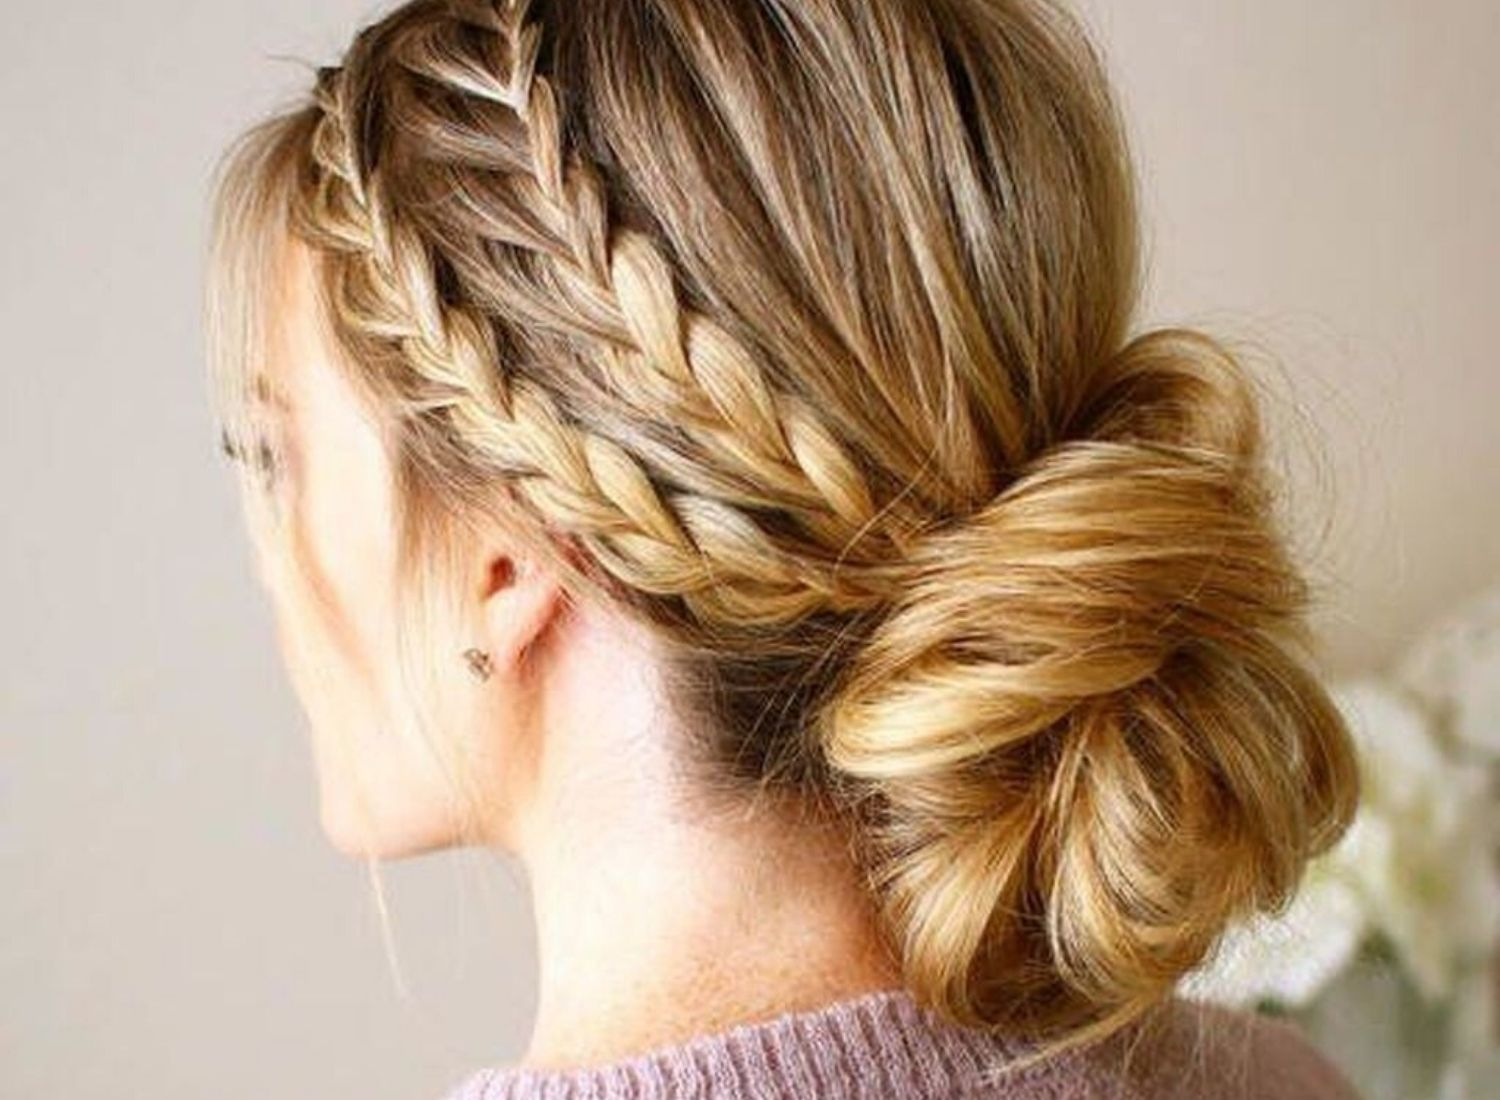 How To Wear Your Hair Millennial Style With Different Hairstyles?